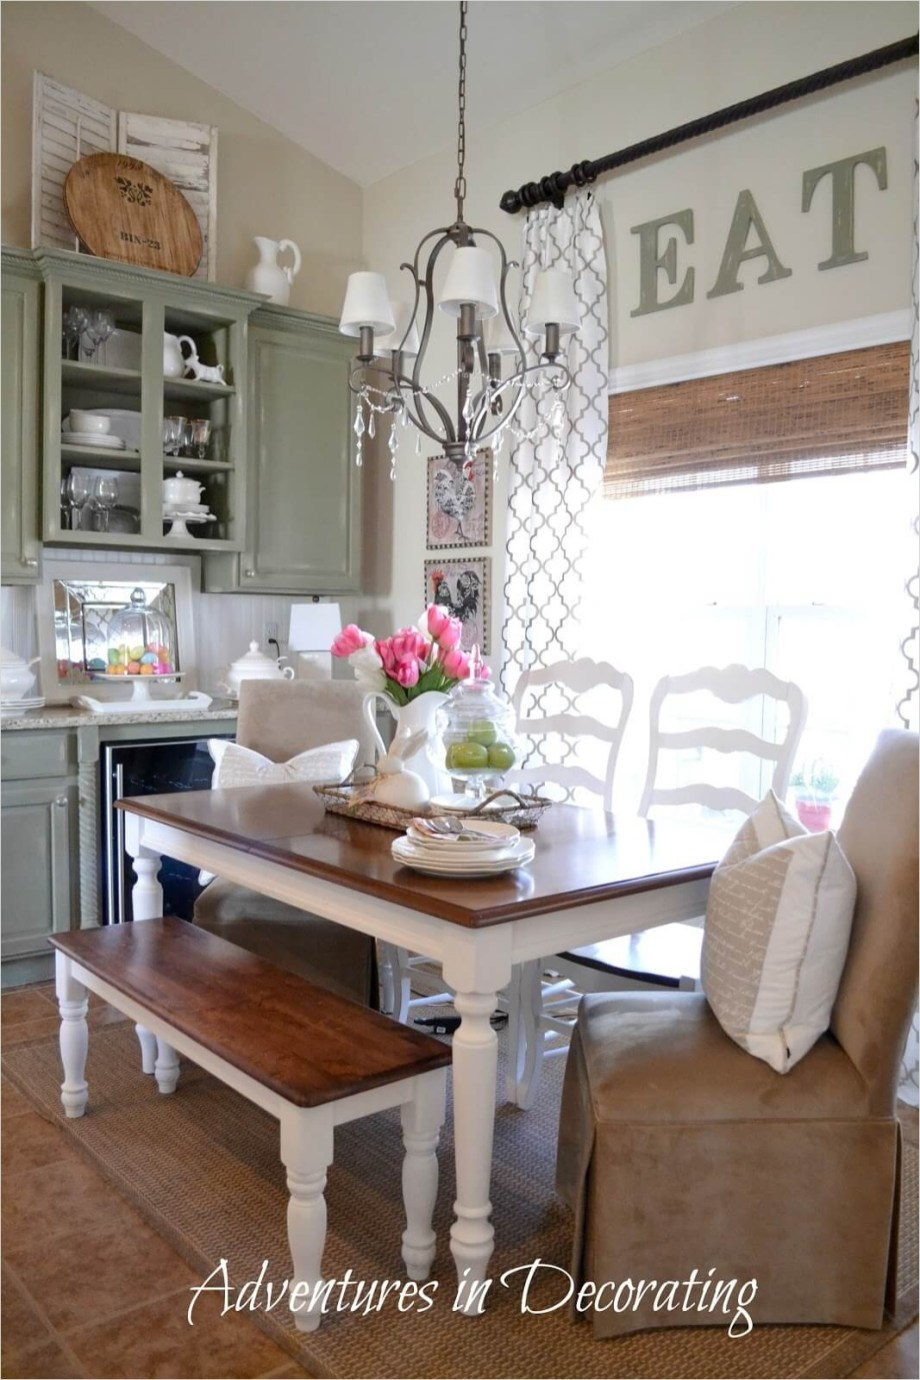 Farmhouse Chic Decorating Ideas 42 37 Best Farmhouse Dining Room Design and Decor Ideas for 2017 7